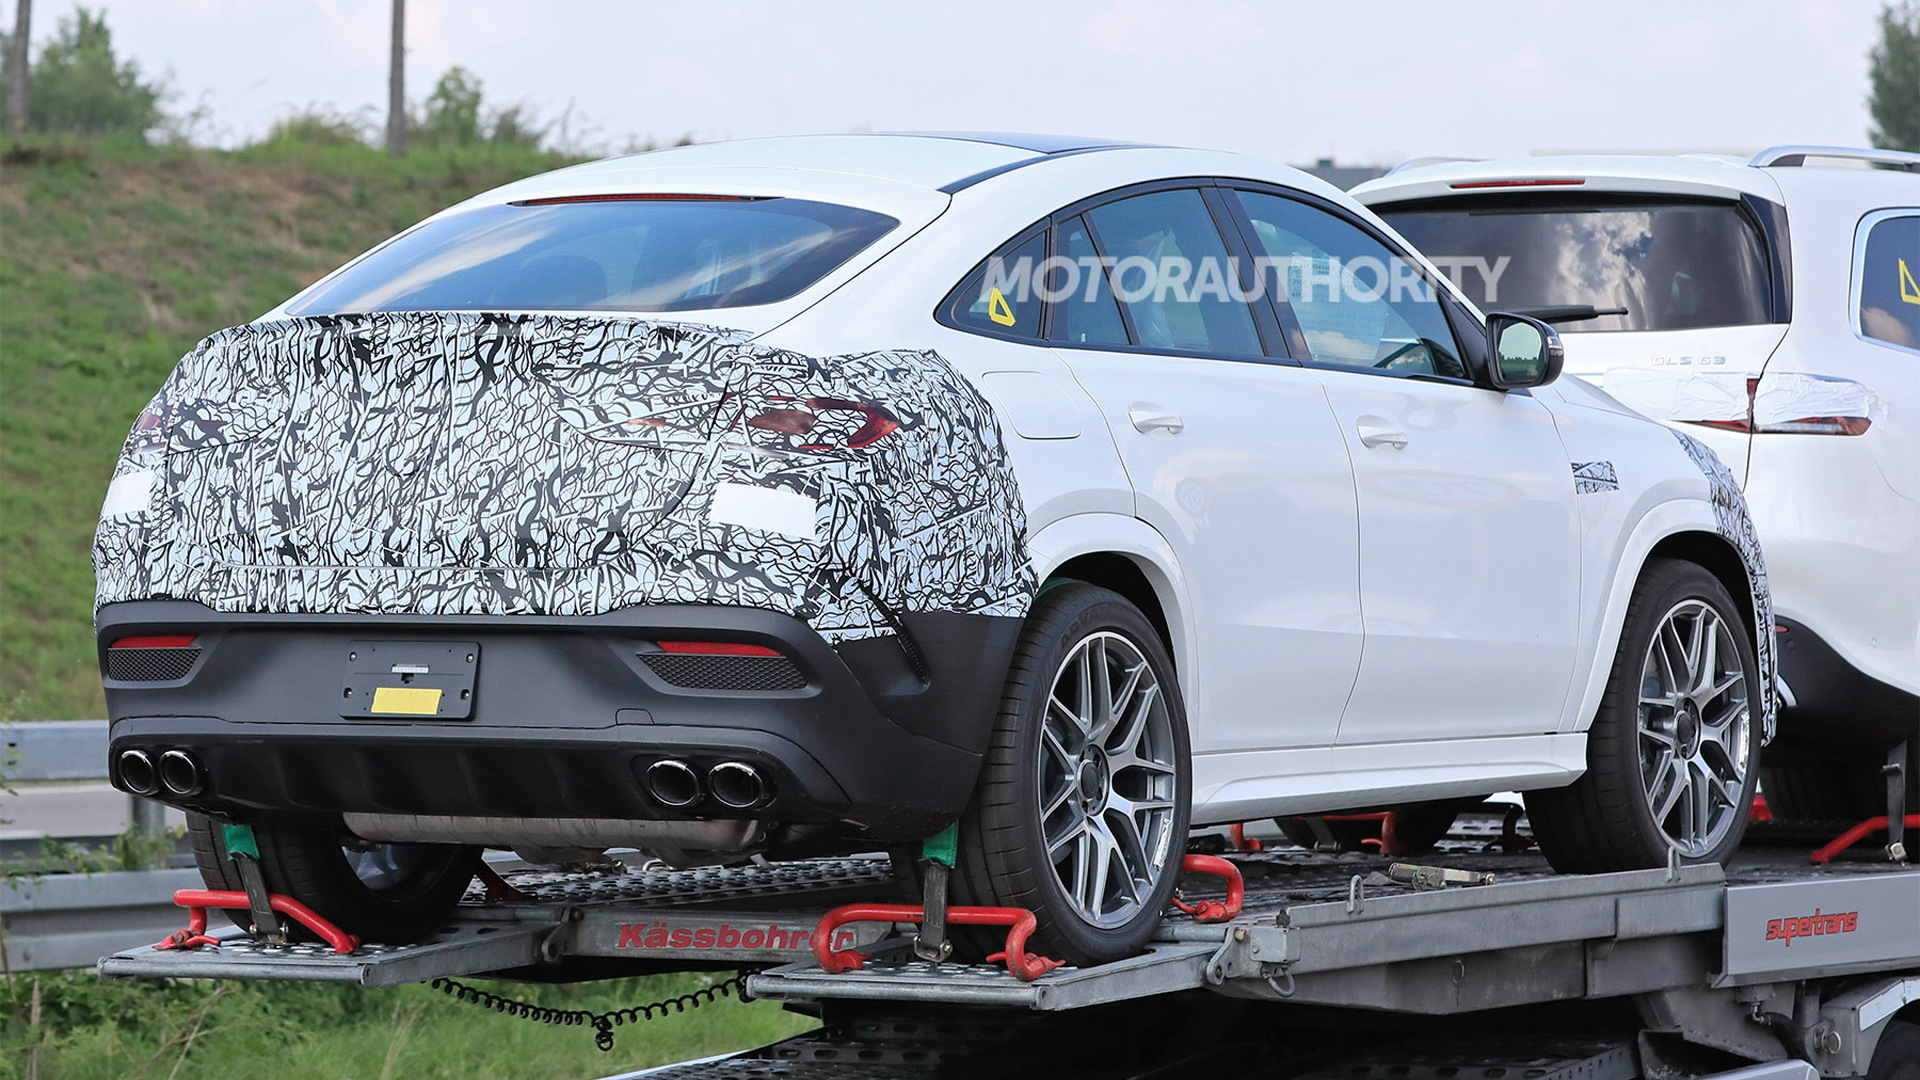 2021 Mercedes-AMG GLE53 Coupe spy shots - Photo credit: S. Baldauf/SB-Medien